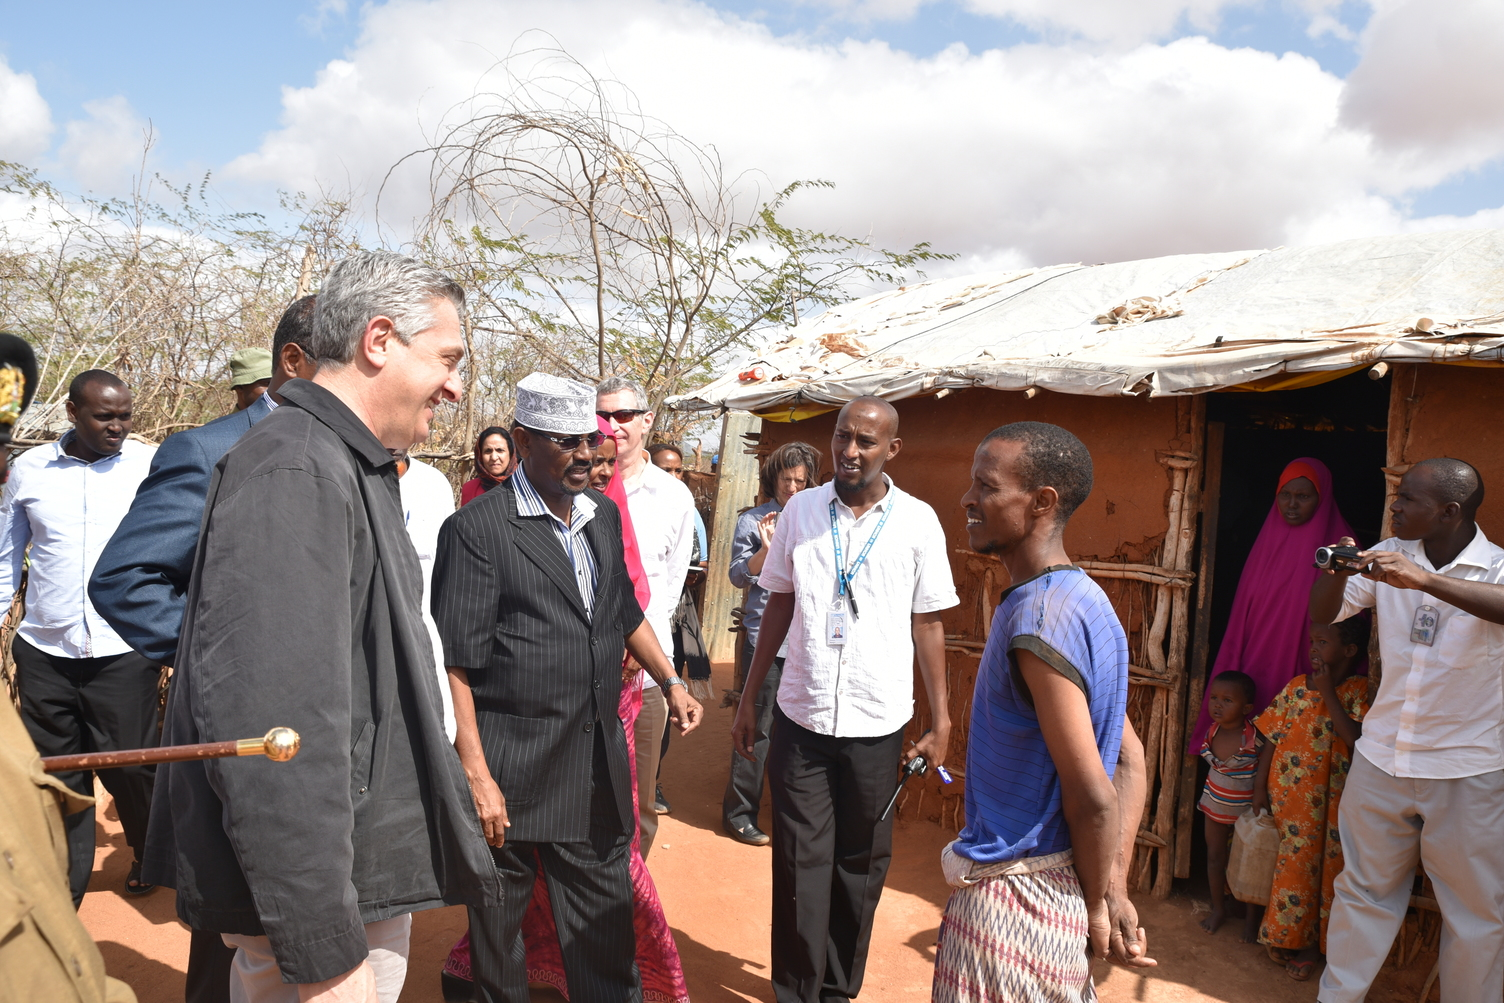 In Kenya, UNHCR Chief Assured Return of Refugees will not Contravene International Obligations